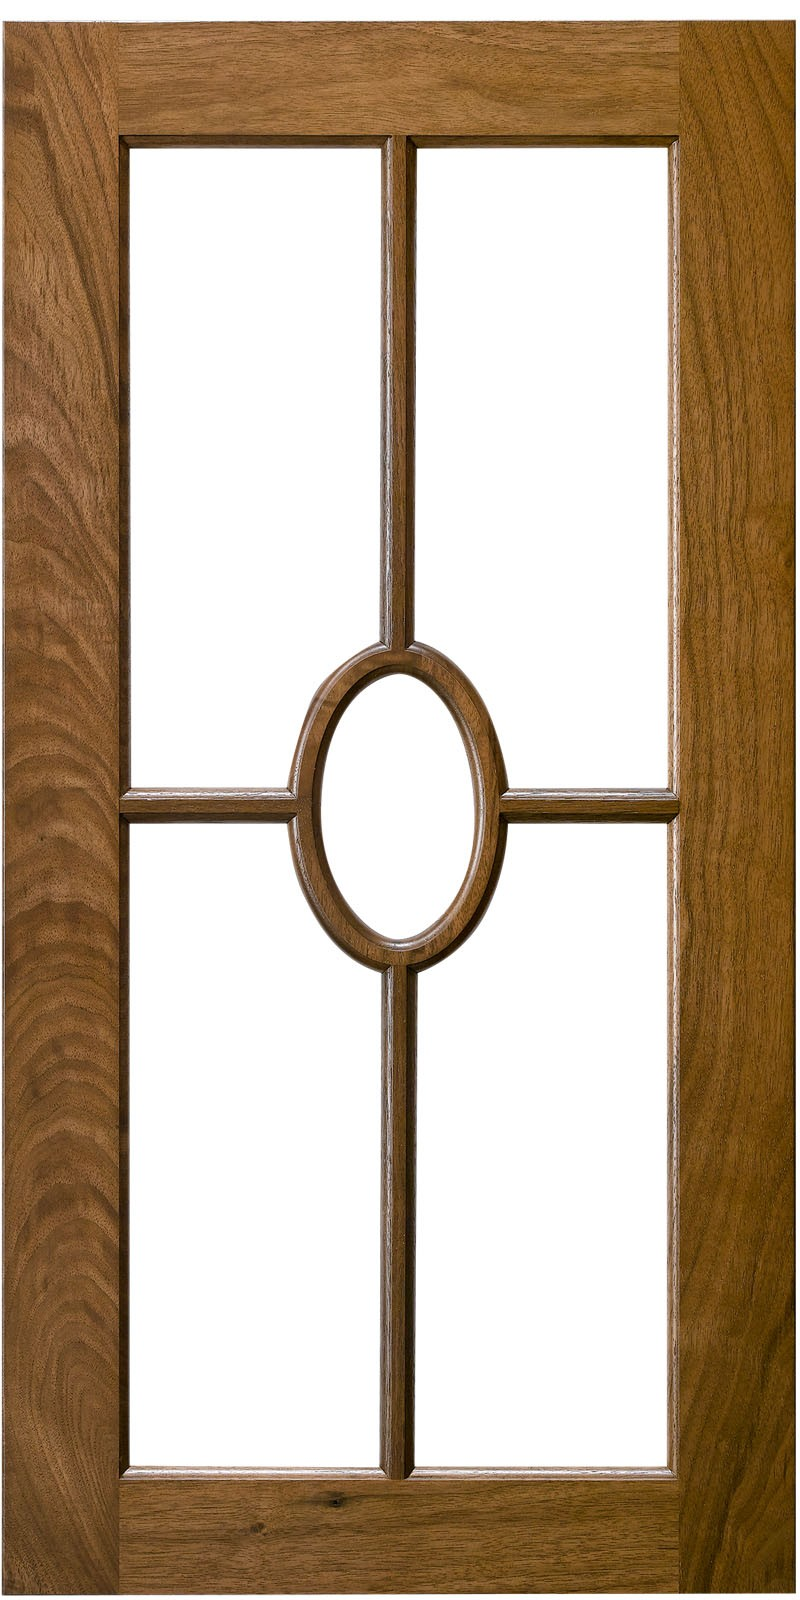 Elliptical Mullion Door